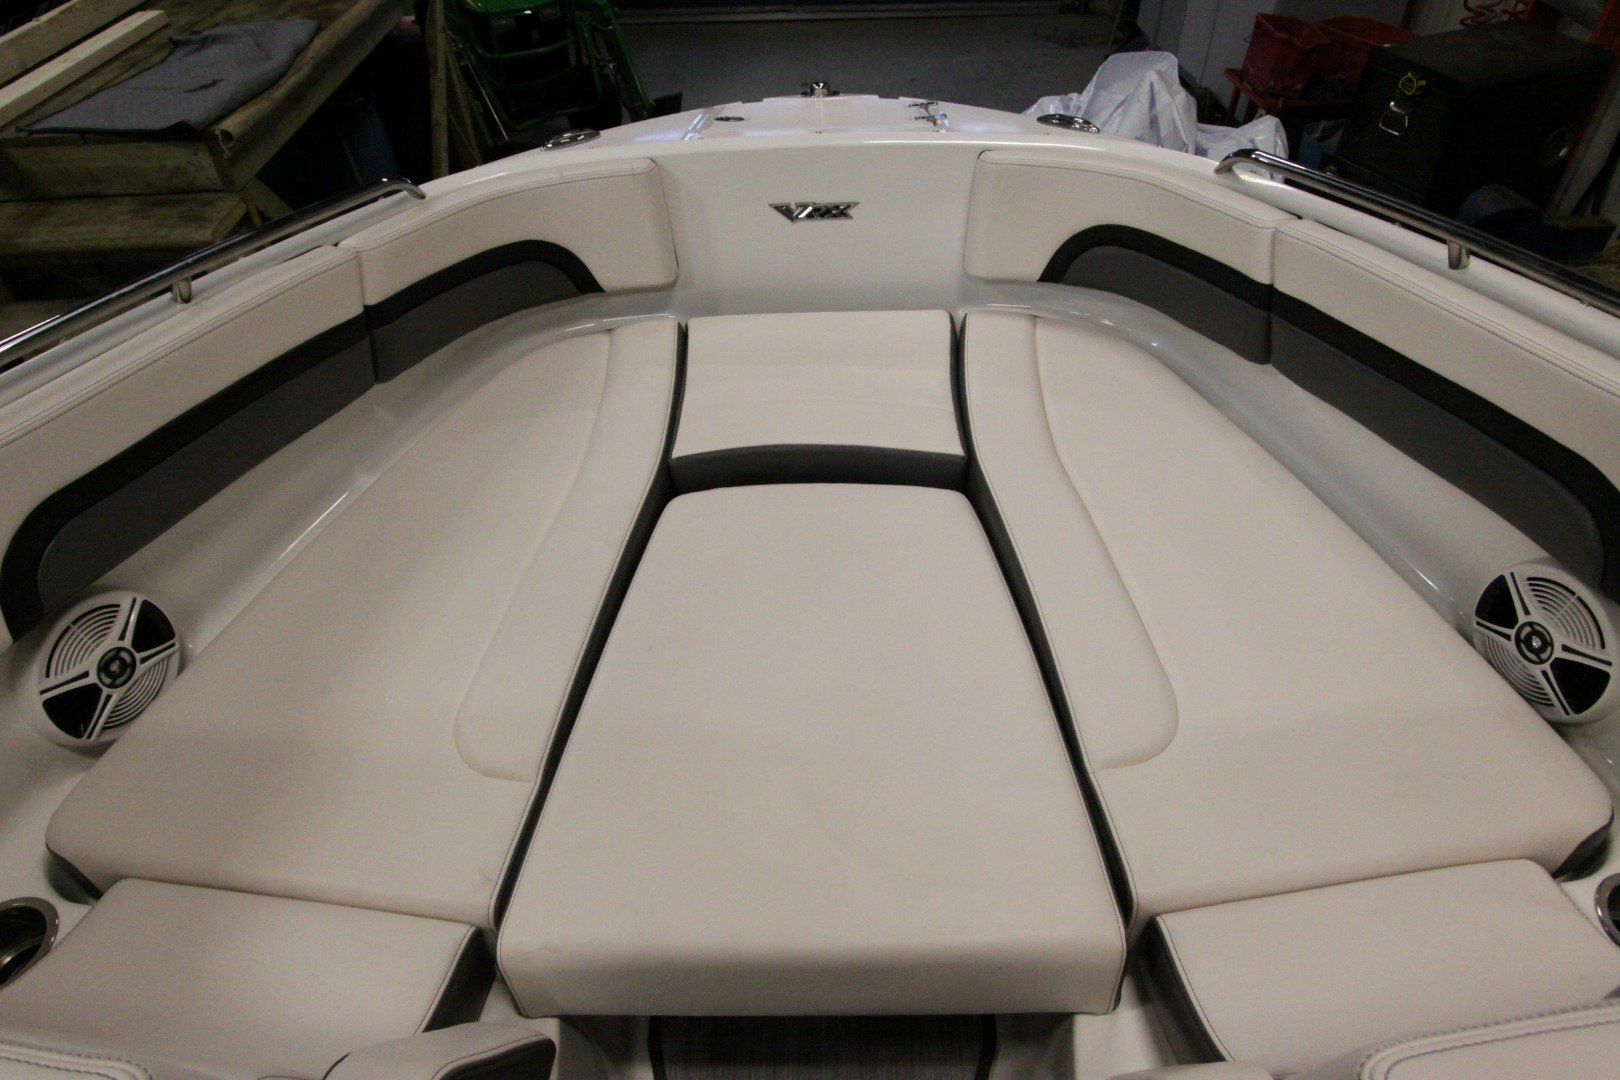 Chaparral 2430 VRX - IMG_9581